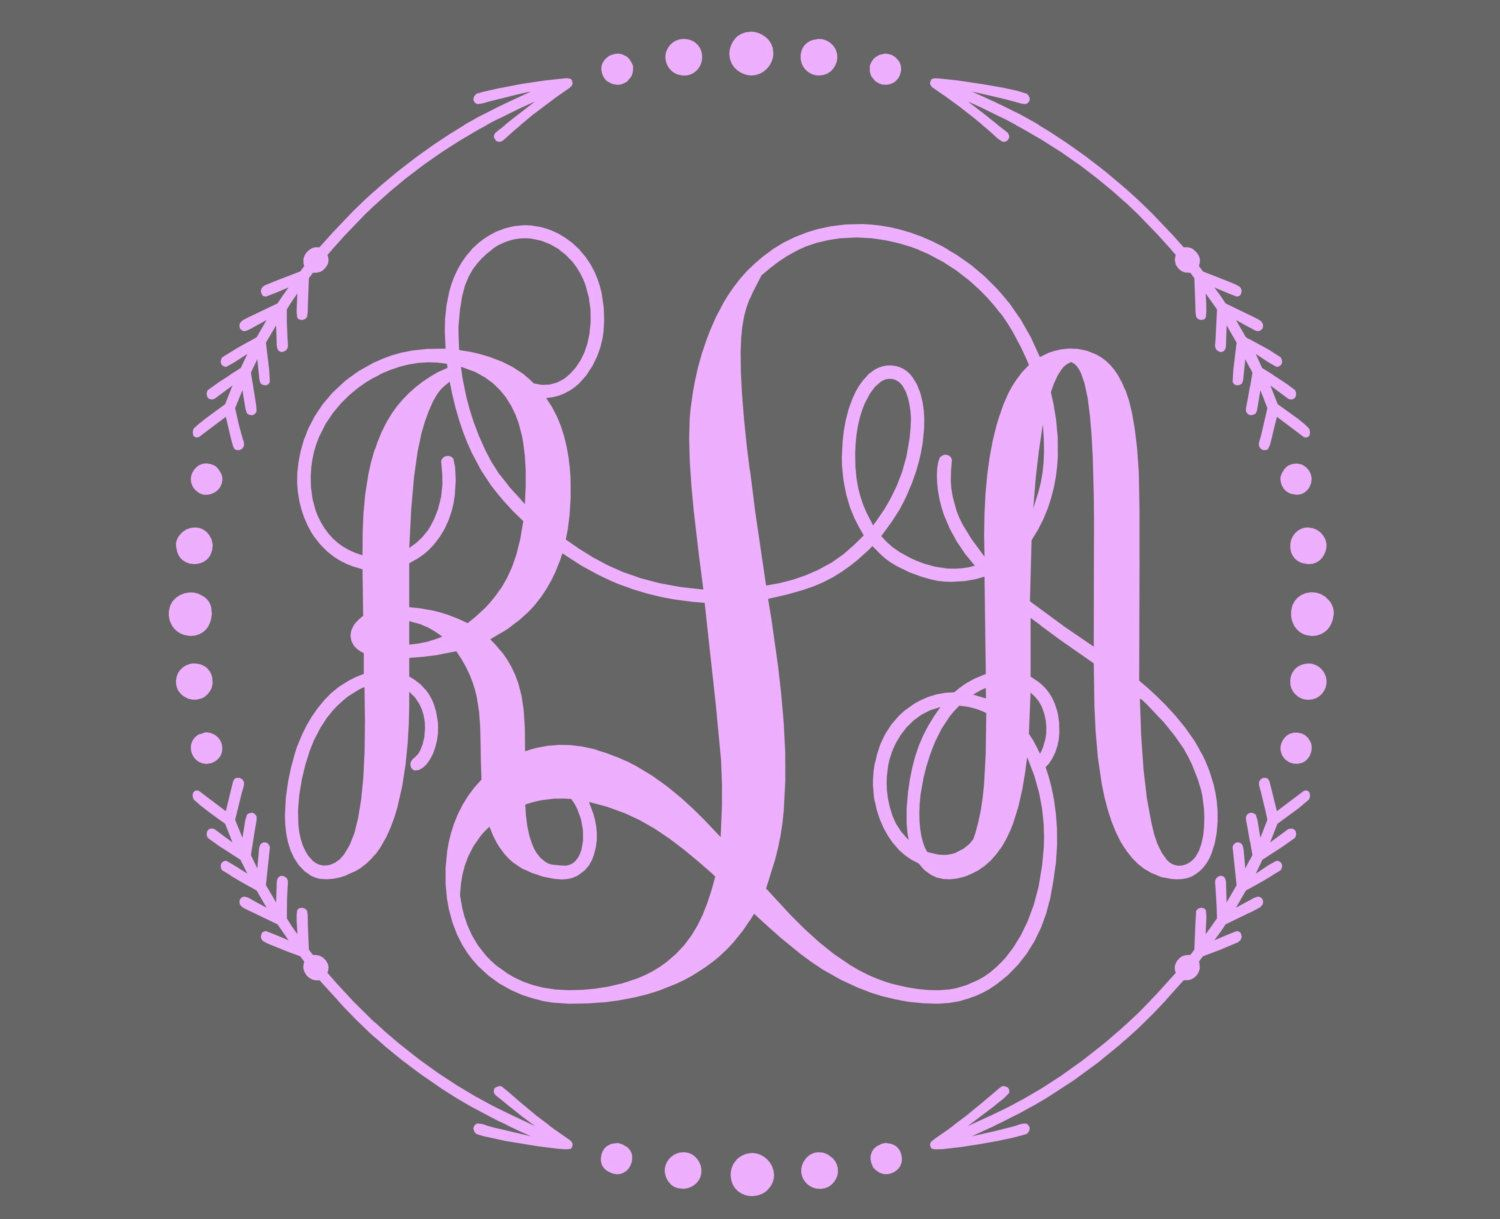 Monogram Decal Monogram Sticker For Your Car Window Cell Phone - Monogram decal for car